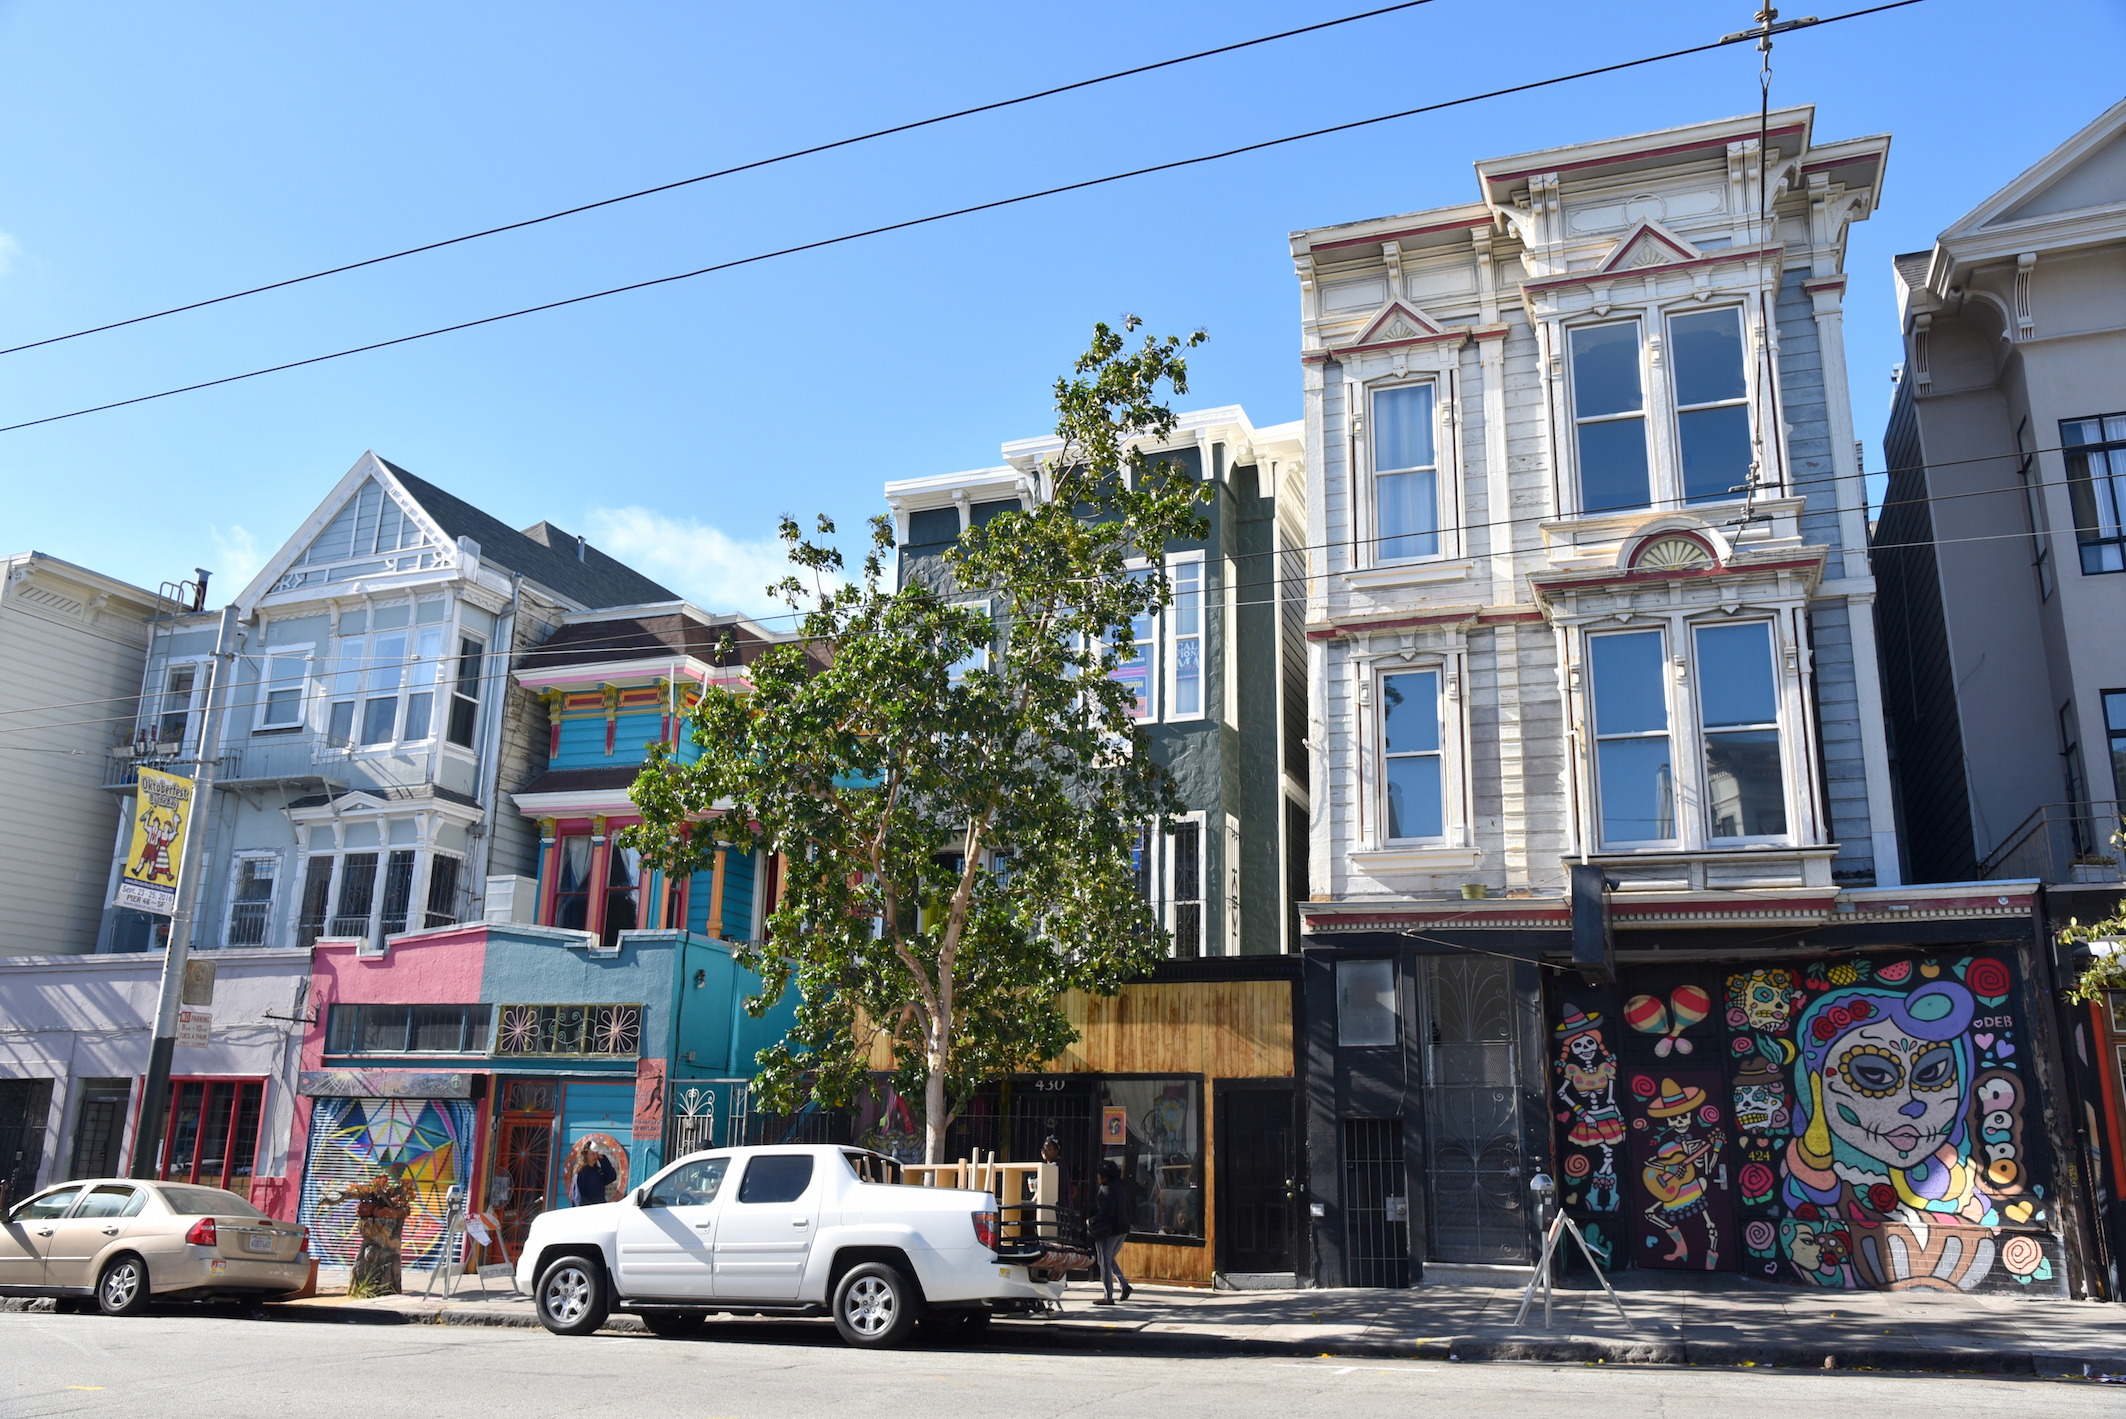 Haight Ashbury hippy neighborhood San Francisco